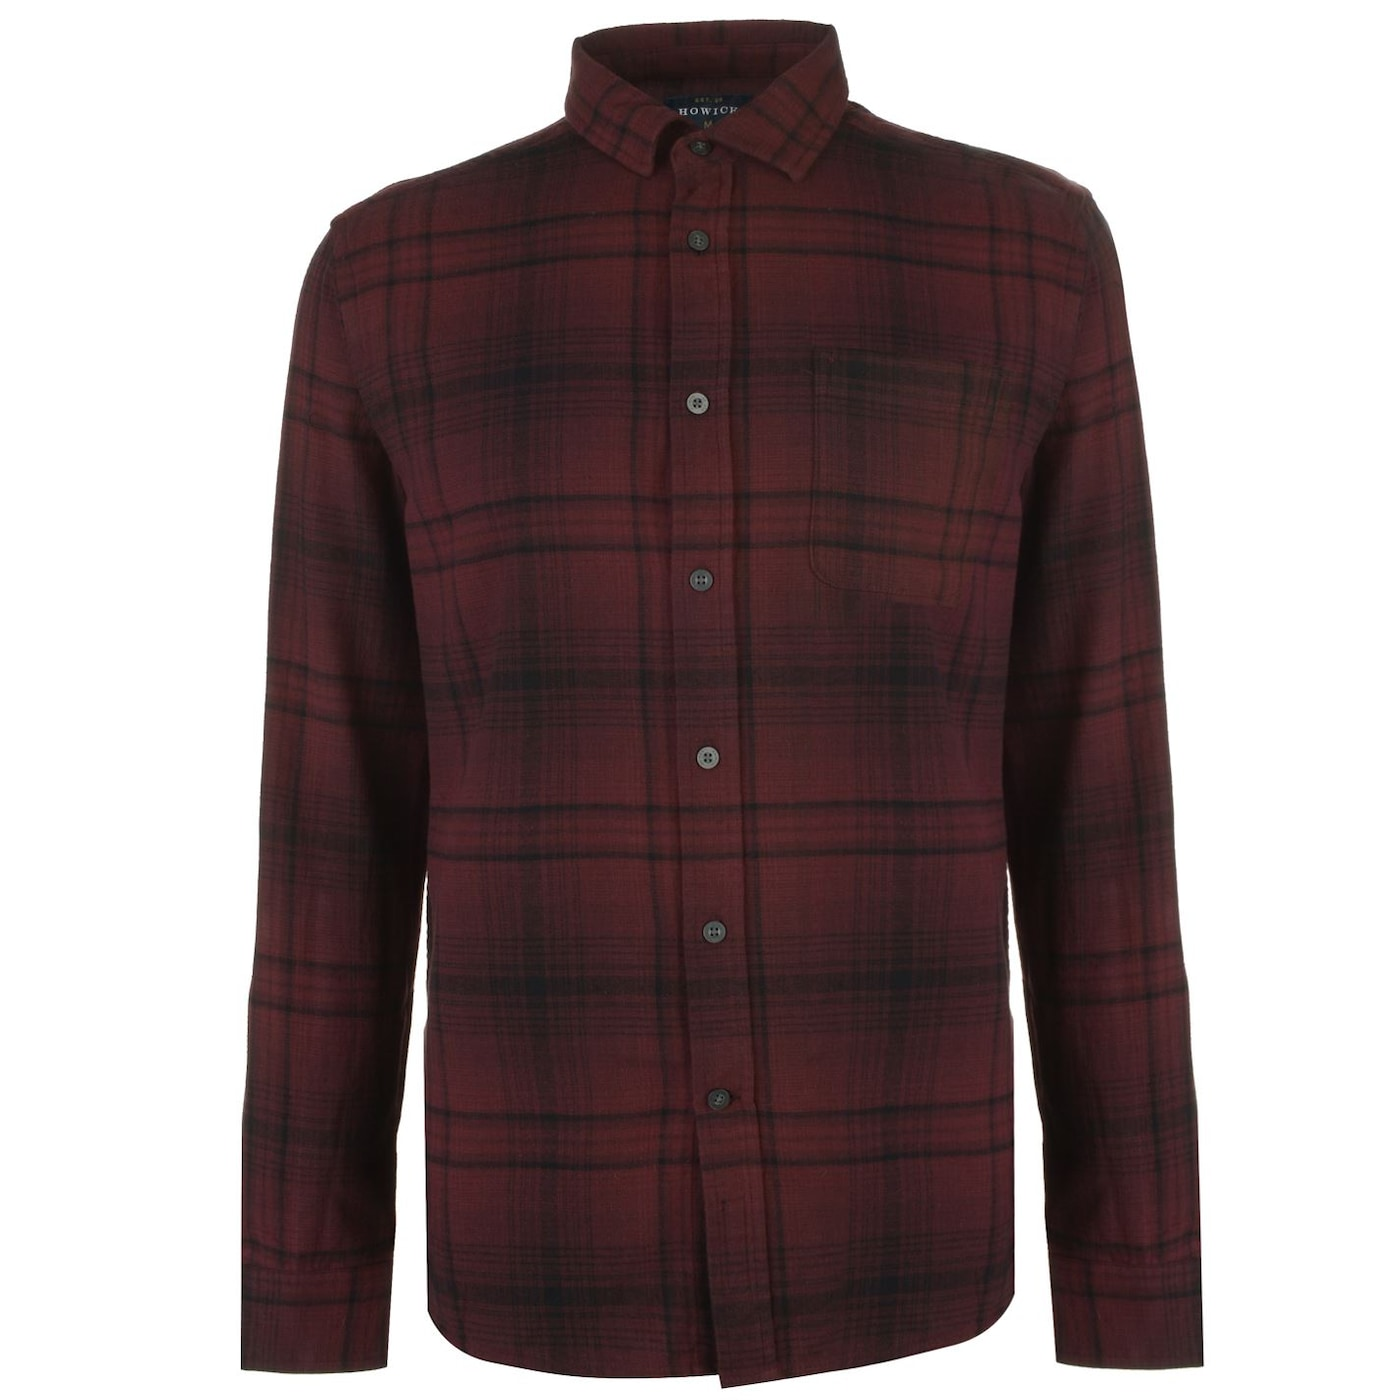 Howick Hoath Brushed Check Shirt